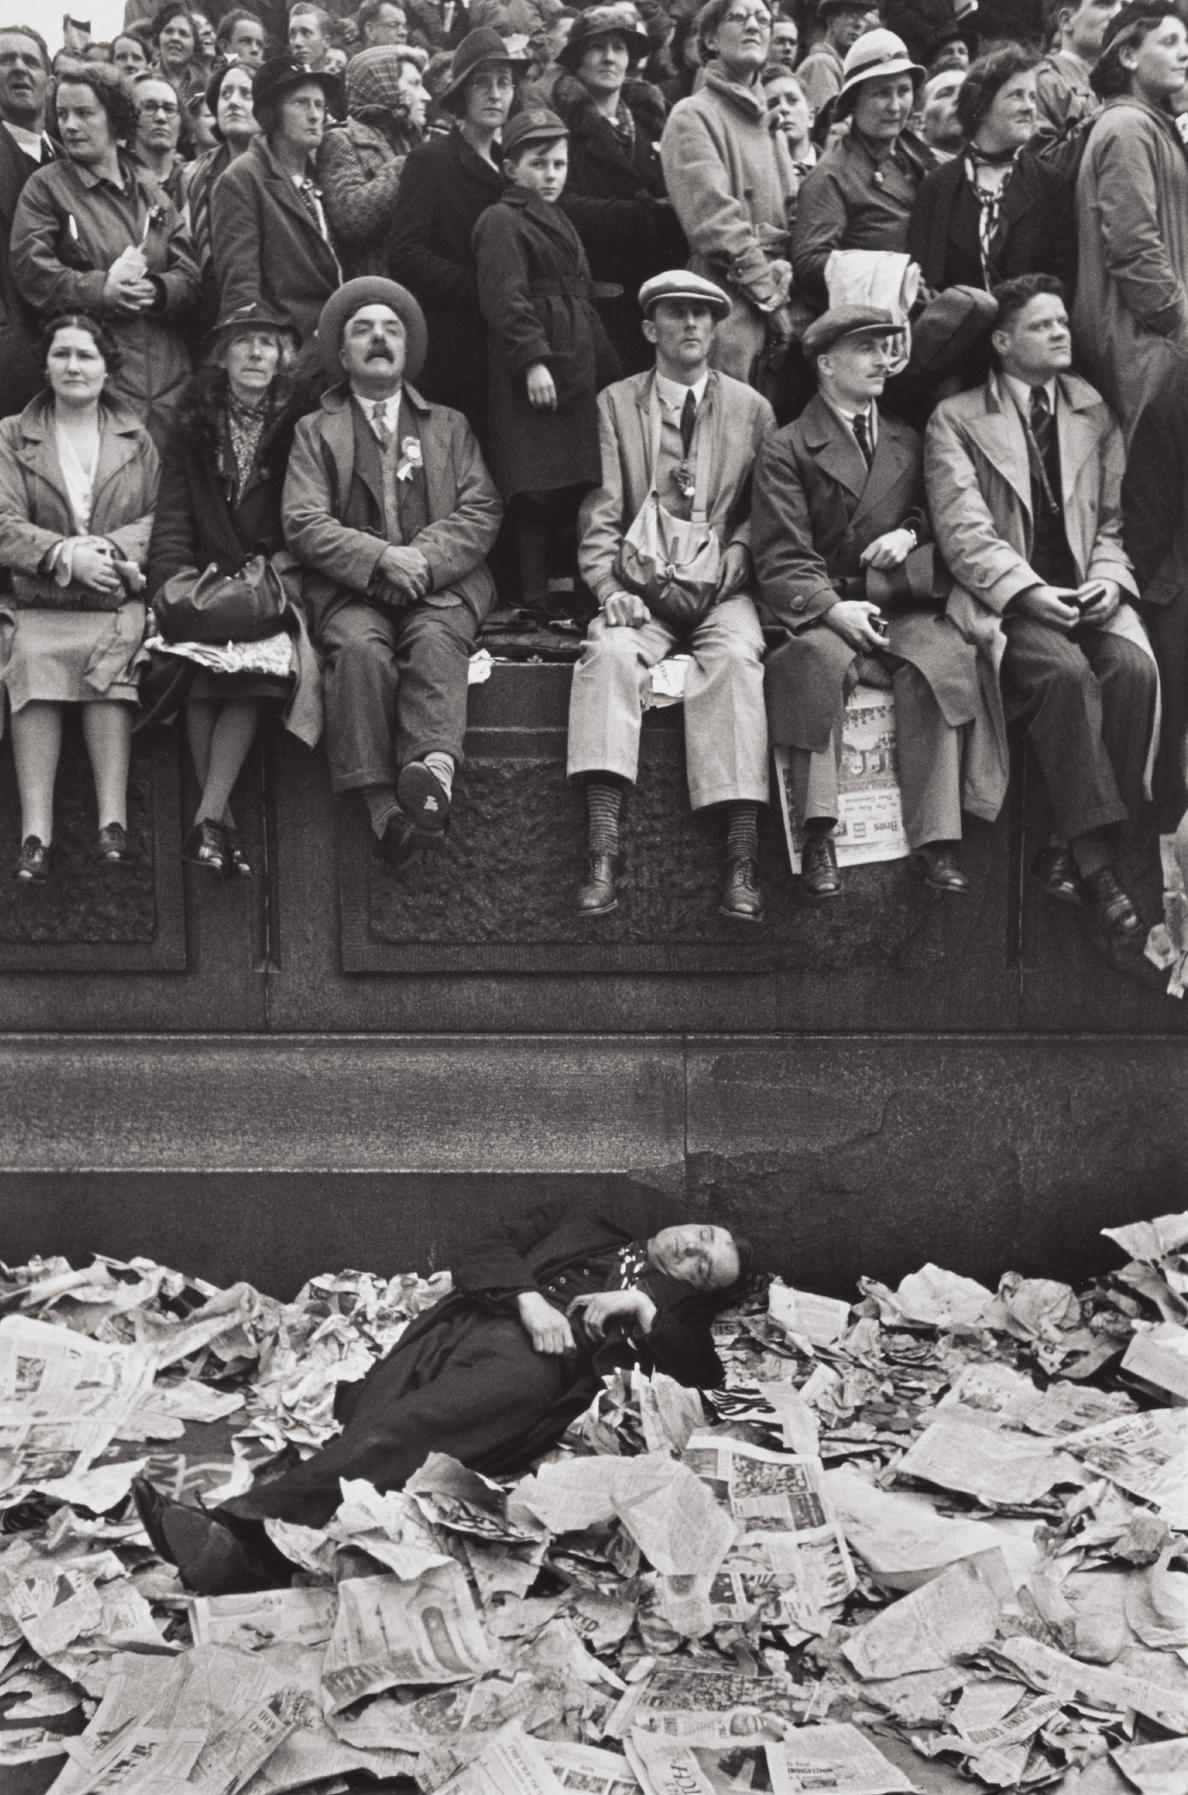 Henri Cartier-Bresson-Coronation Of King George VI, London-1937